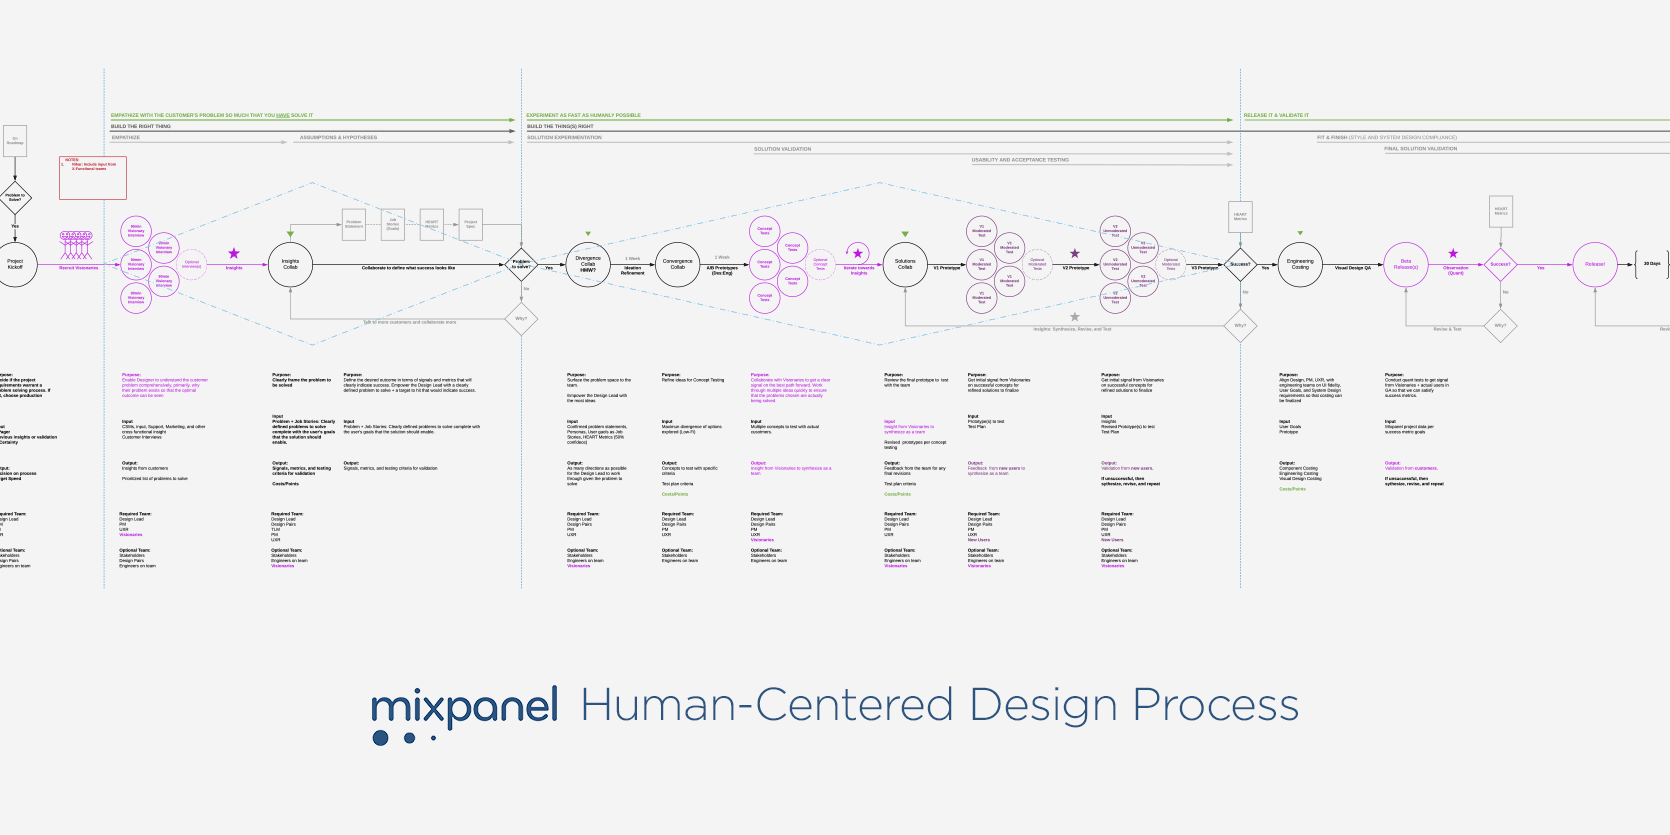 The Human-Centered Design Process I designed for Mixpanel that increased speed-to-value while deeply integrating our customers.